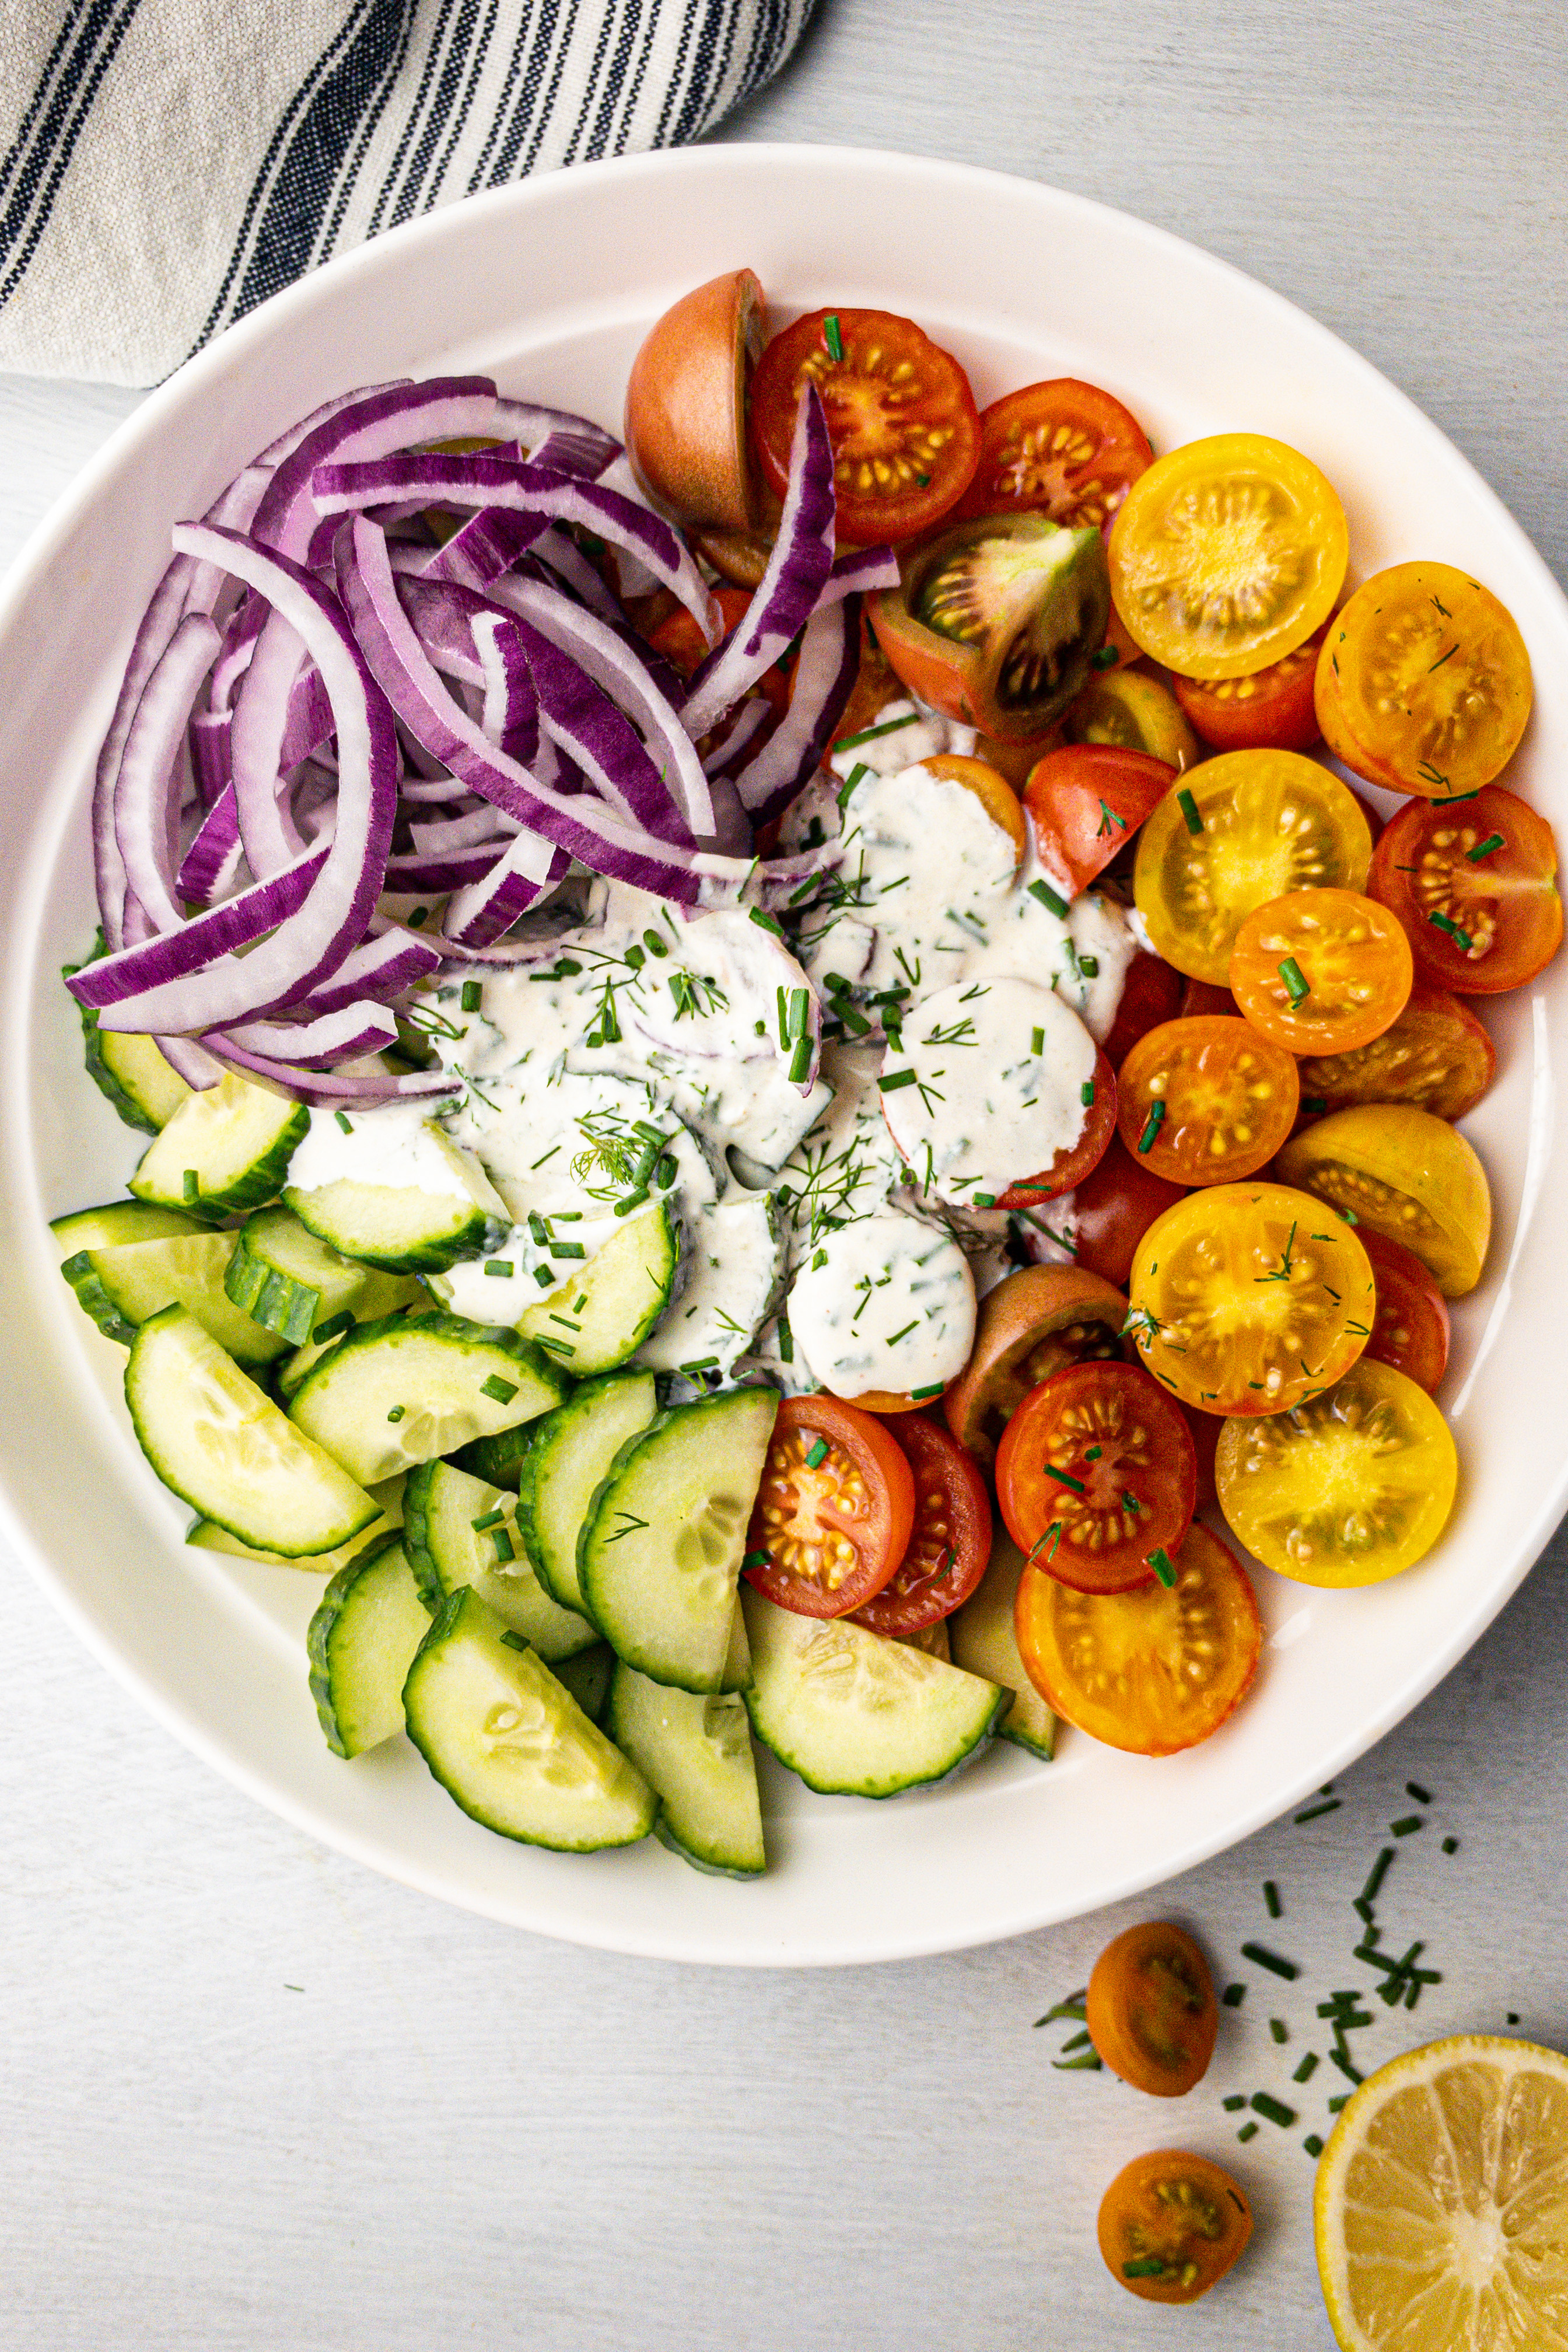 Creamy Herb Tomato and Cucumber Salad for Clean Eating